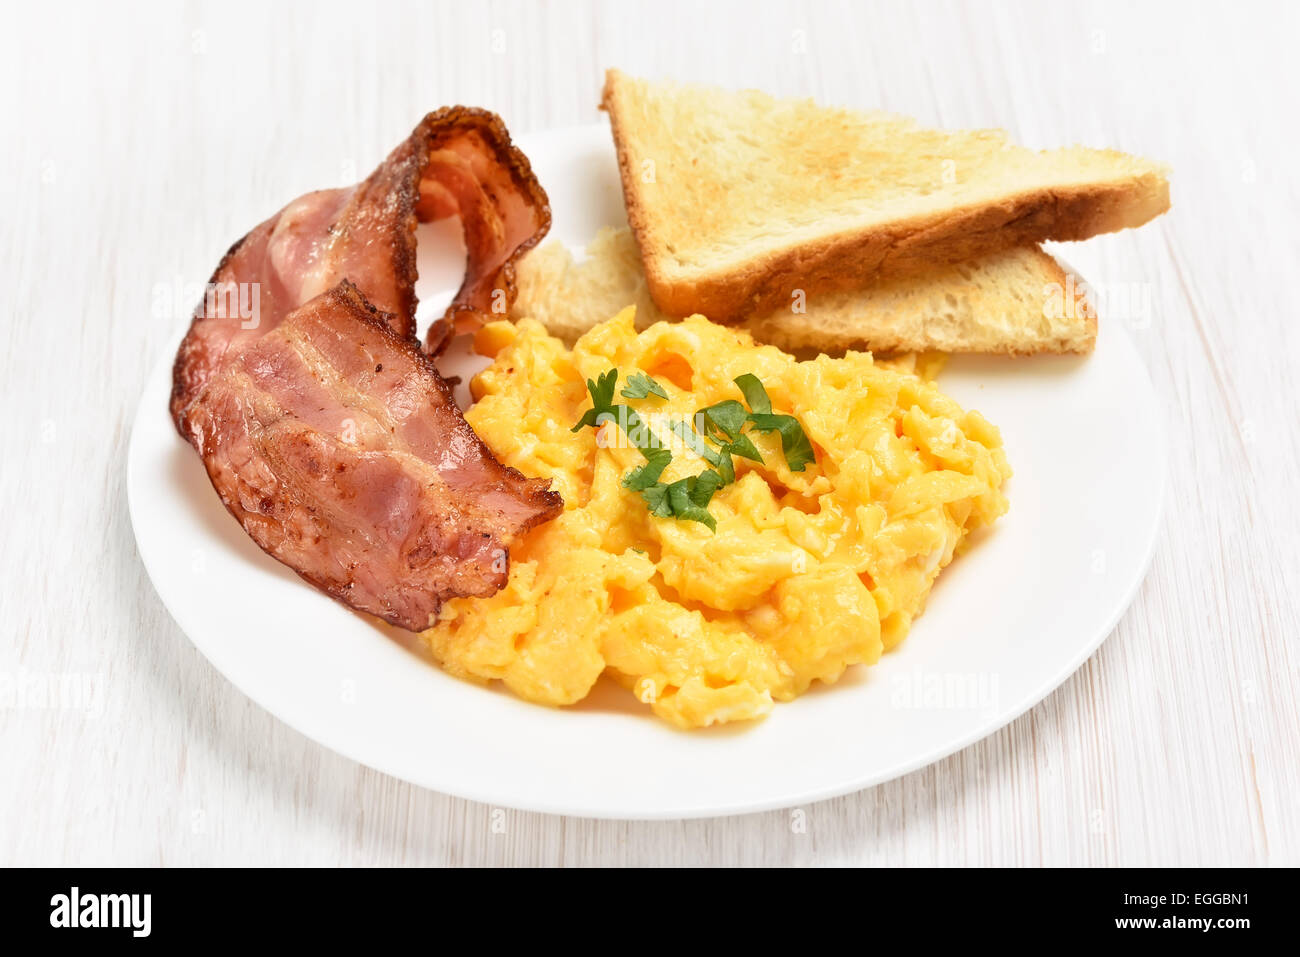 Scrambled eggs with bacon and toasts on white plate, close up view - Stock Image